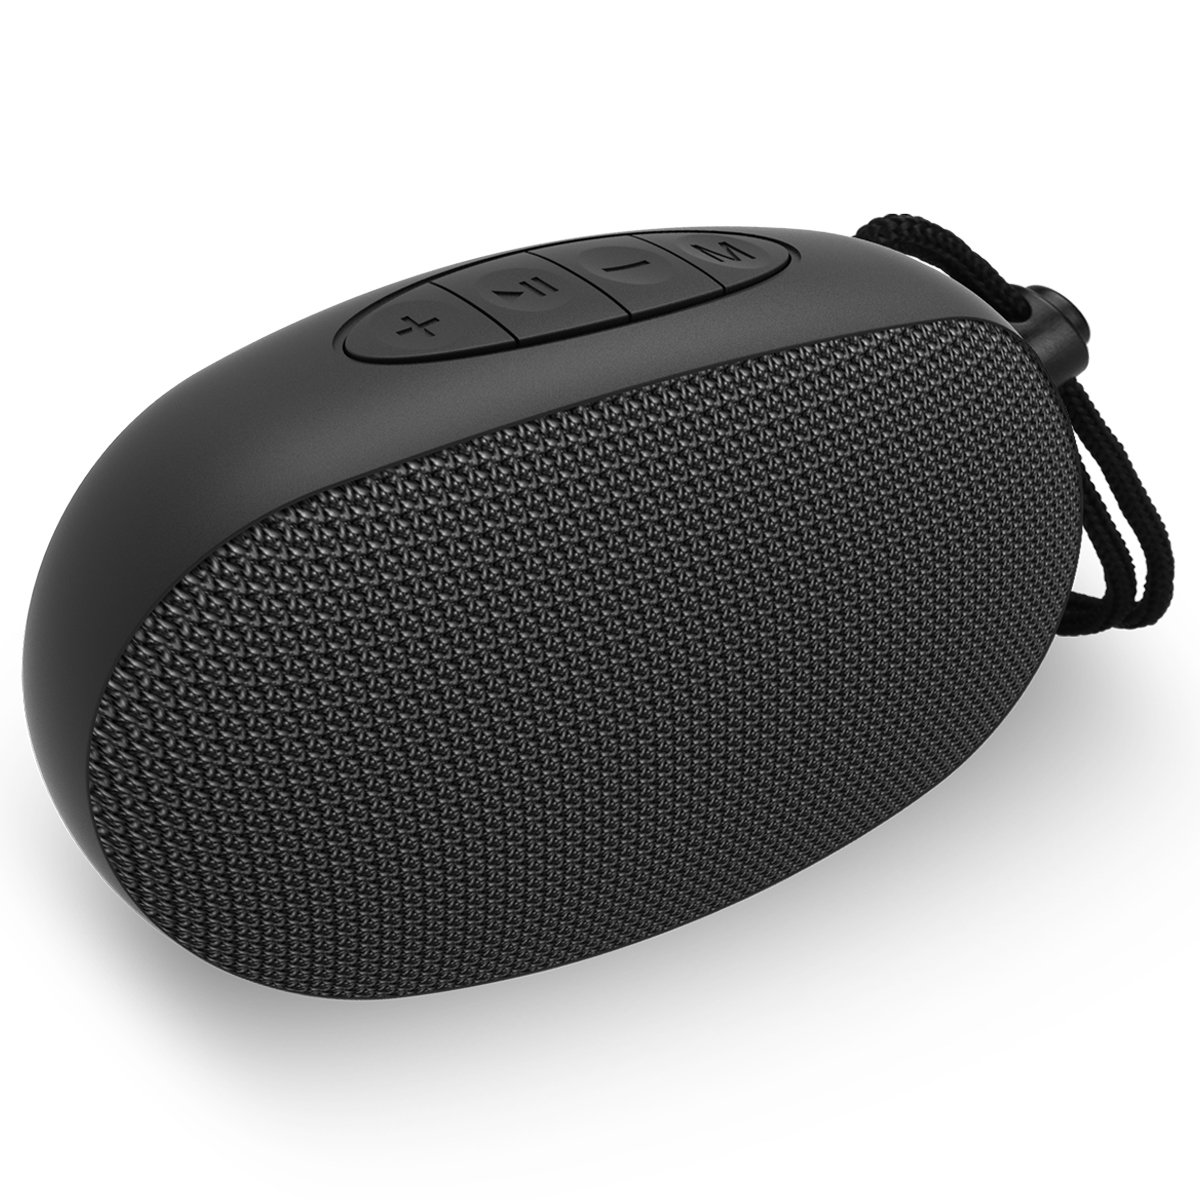 Bluetooth Speaker,LFS Wireless Speaker Portable with Loud Stereo Sound 10W Rich Bass 80ft Bluetooth Range,MP3 Mini Speaker Bluetooth for Iphone Samsung IOS Android cellphone Ipad Black Altavoz